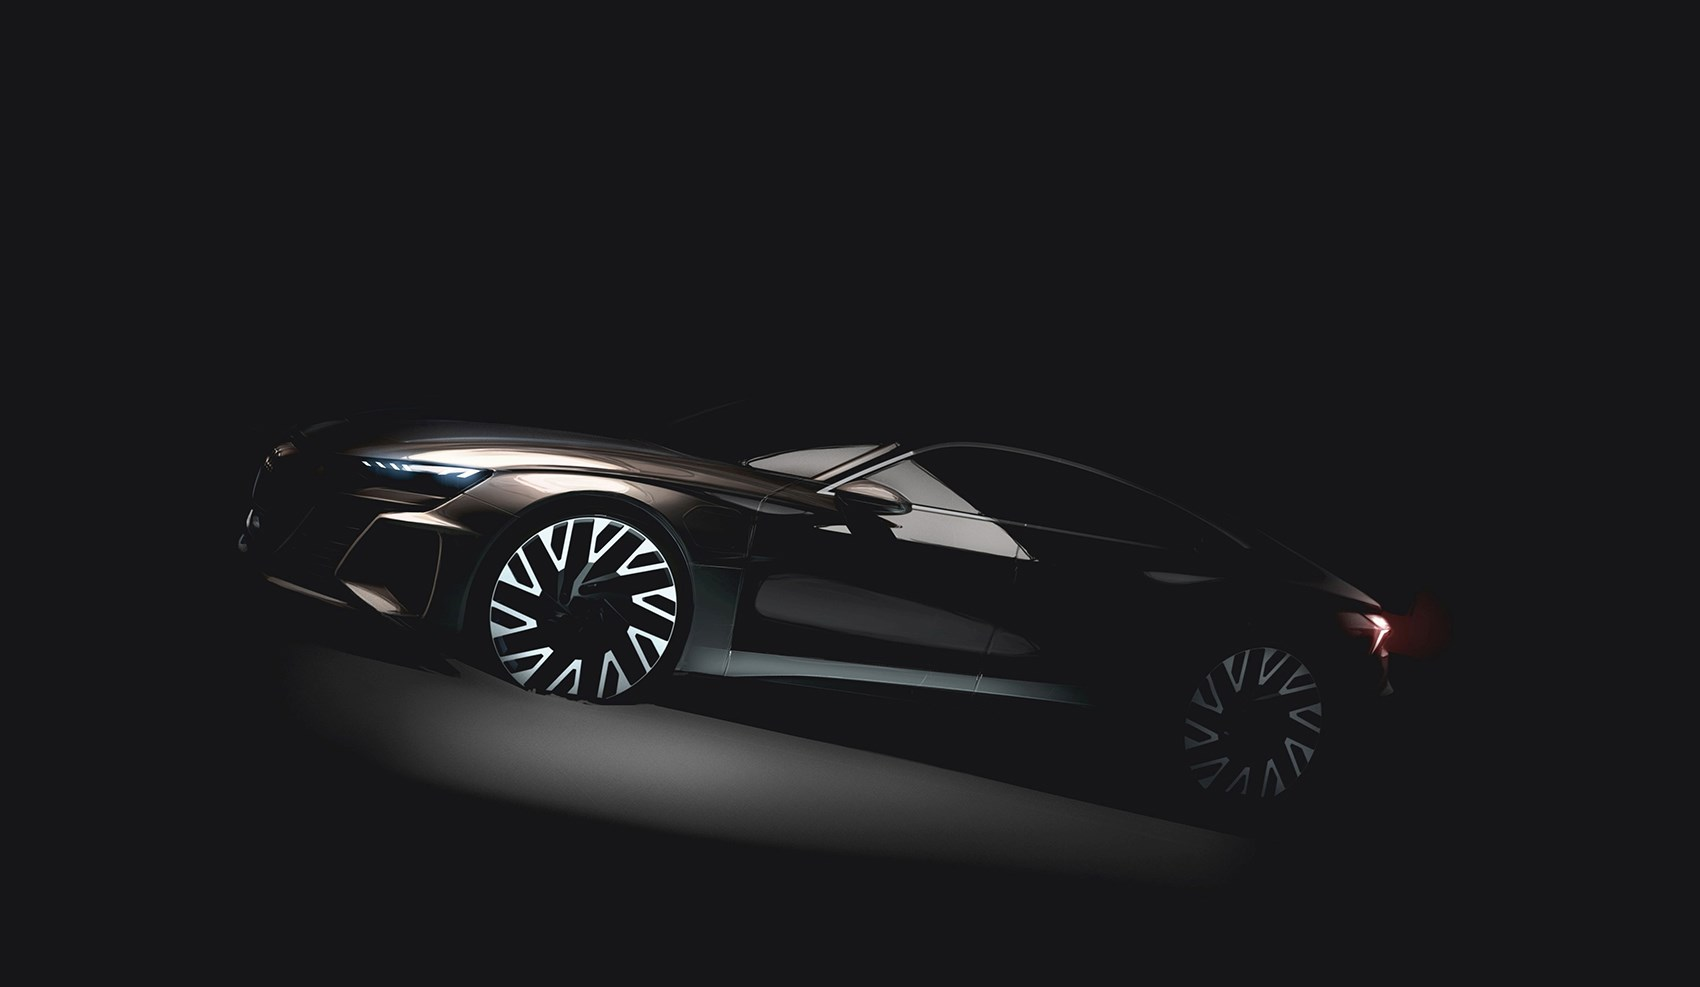 Audi e-Tron GT Will Be a Mission E-Based Four-Door